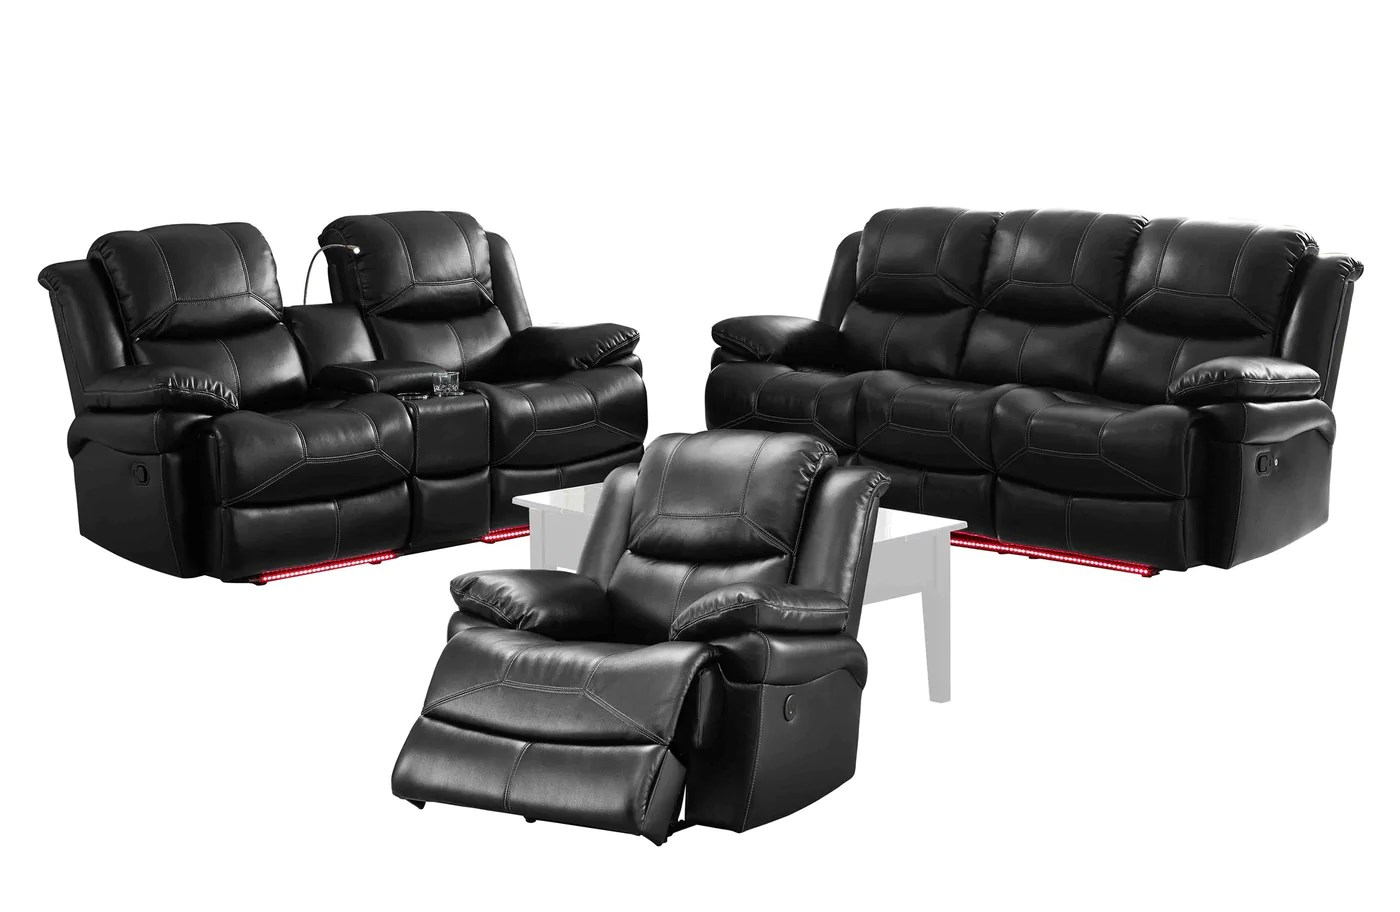 black reclining sofa with console two seat bed cover new classic flynn 3pc dual recliner love loveseat glider in fabric premier